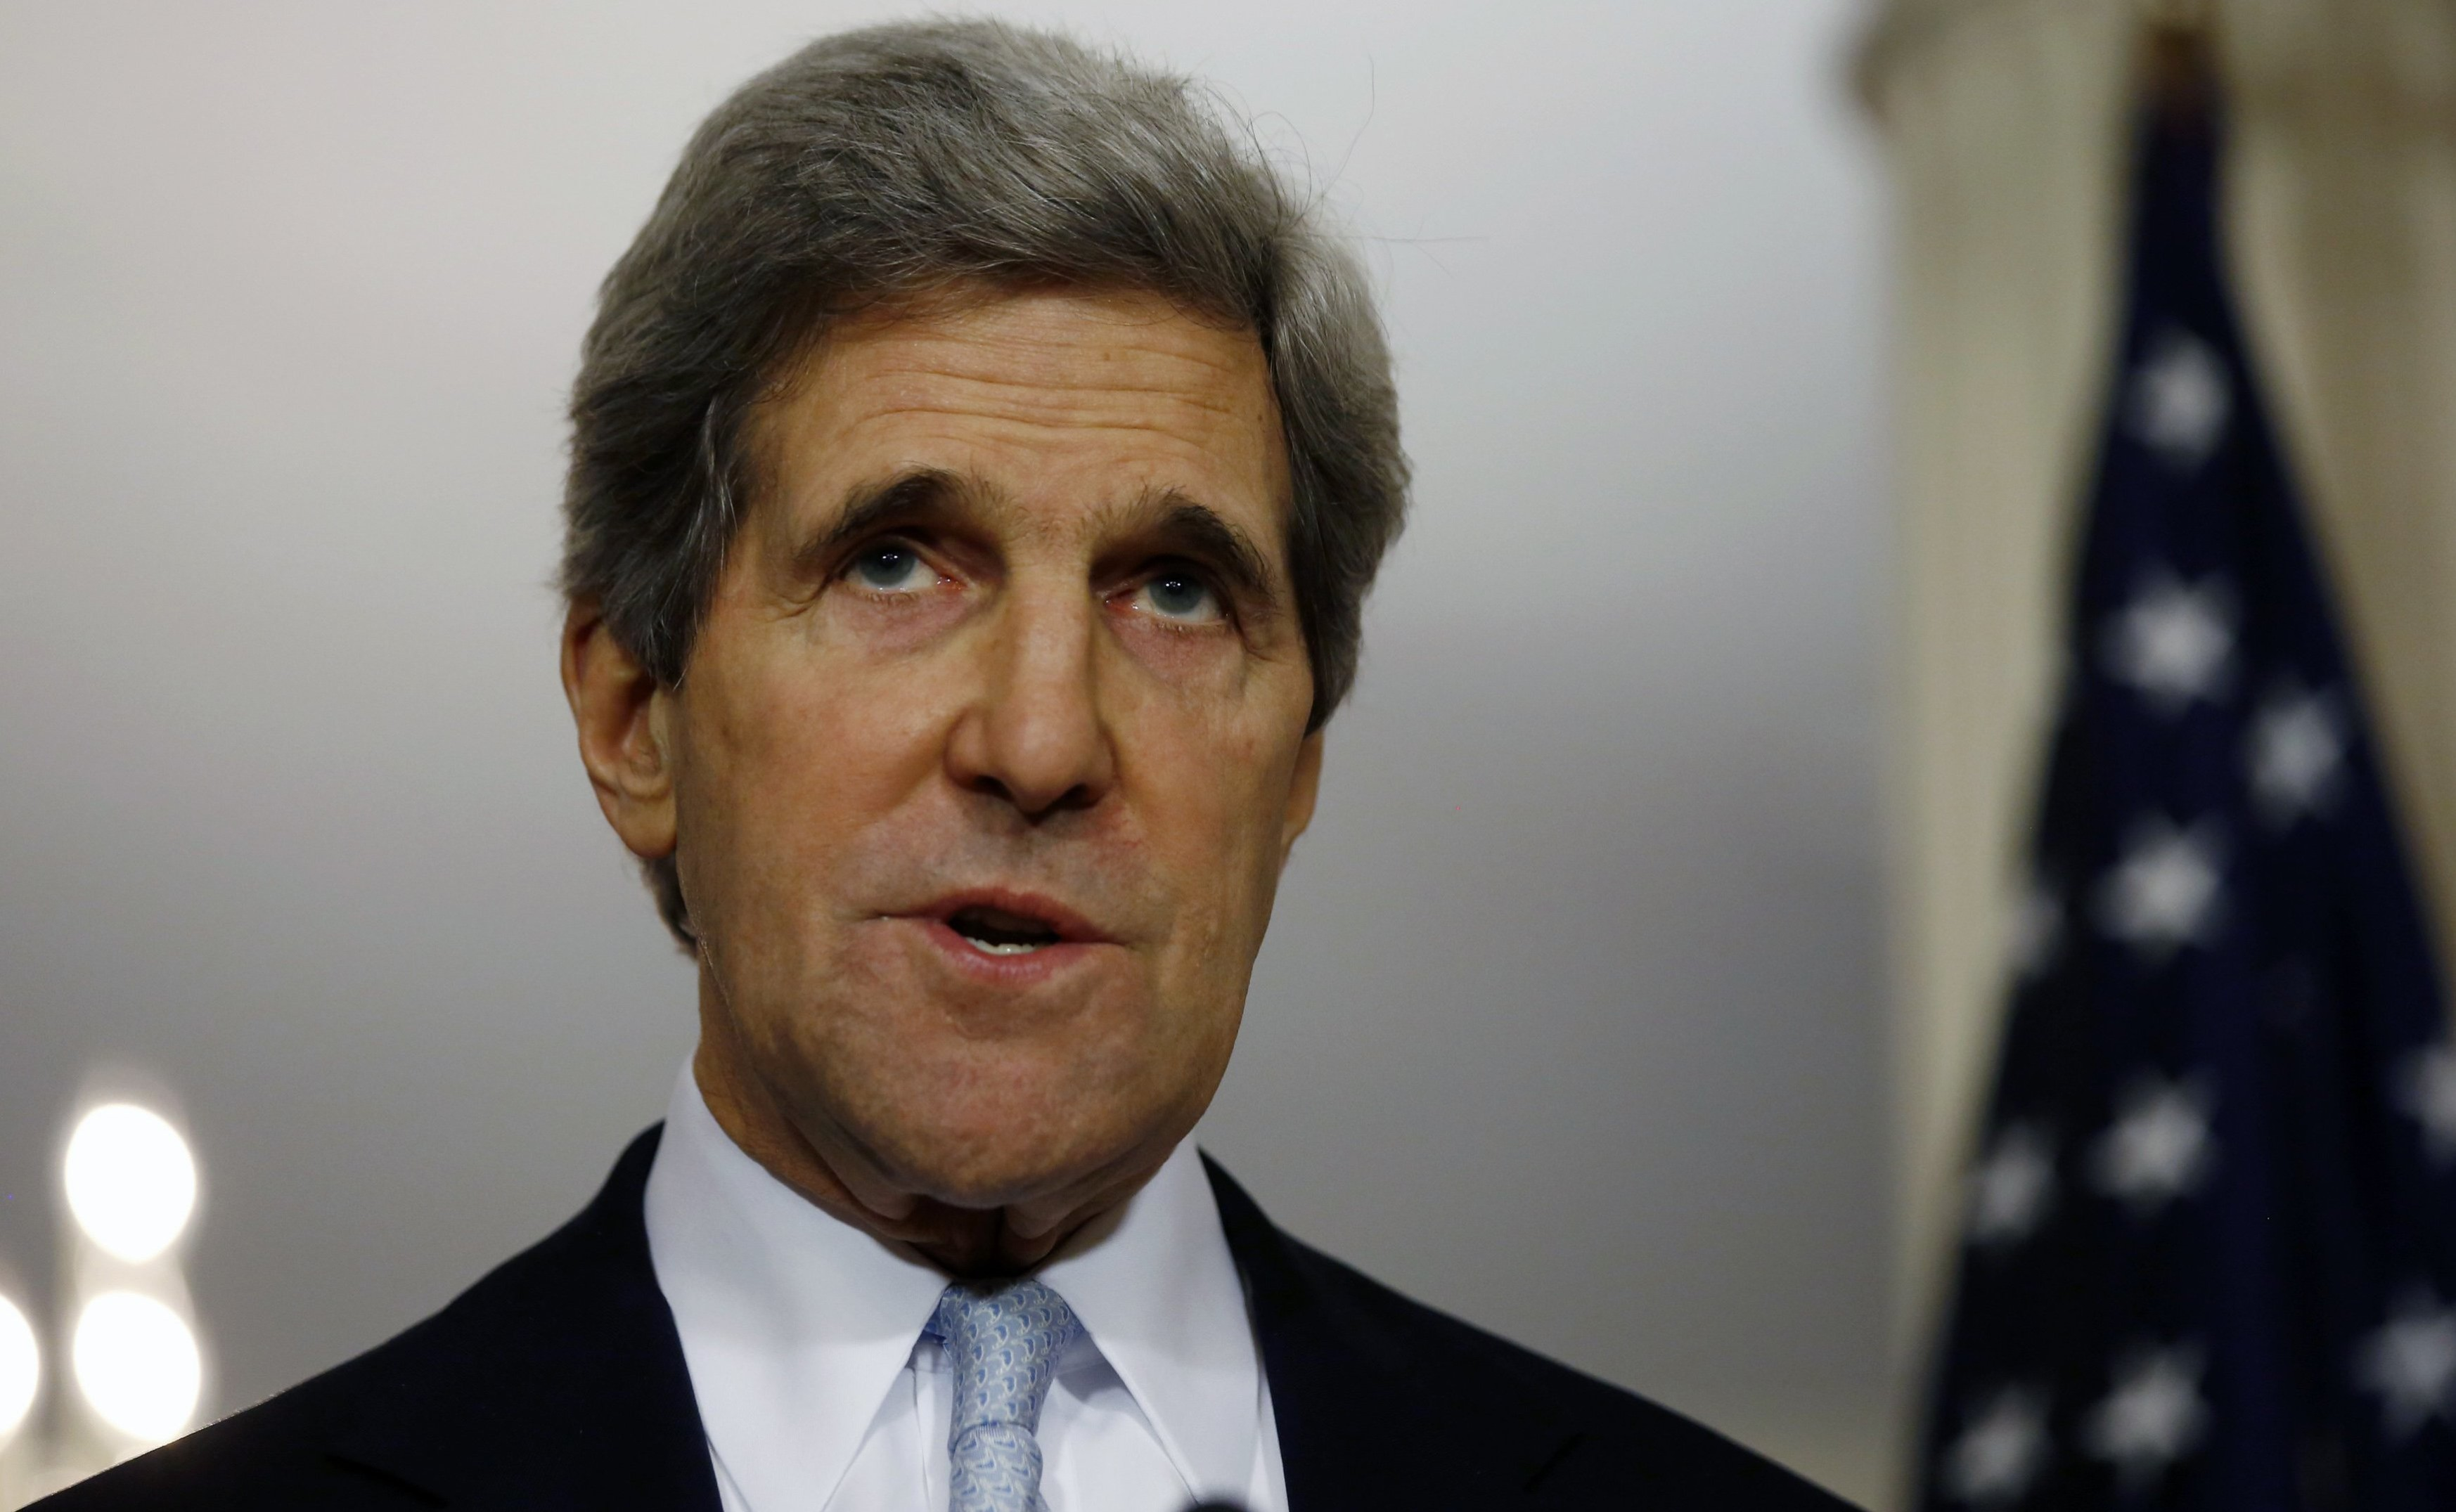 JohnKerry e1459397564535 - U.S. will invest $600m in Nigeria, says Kerry